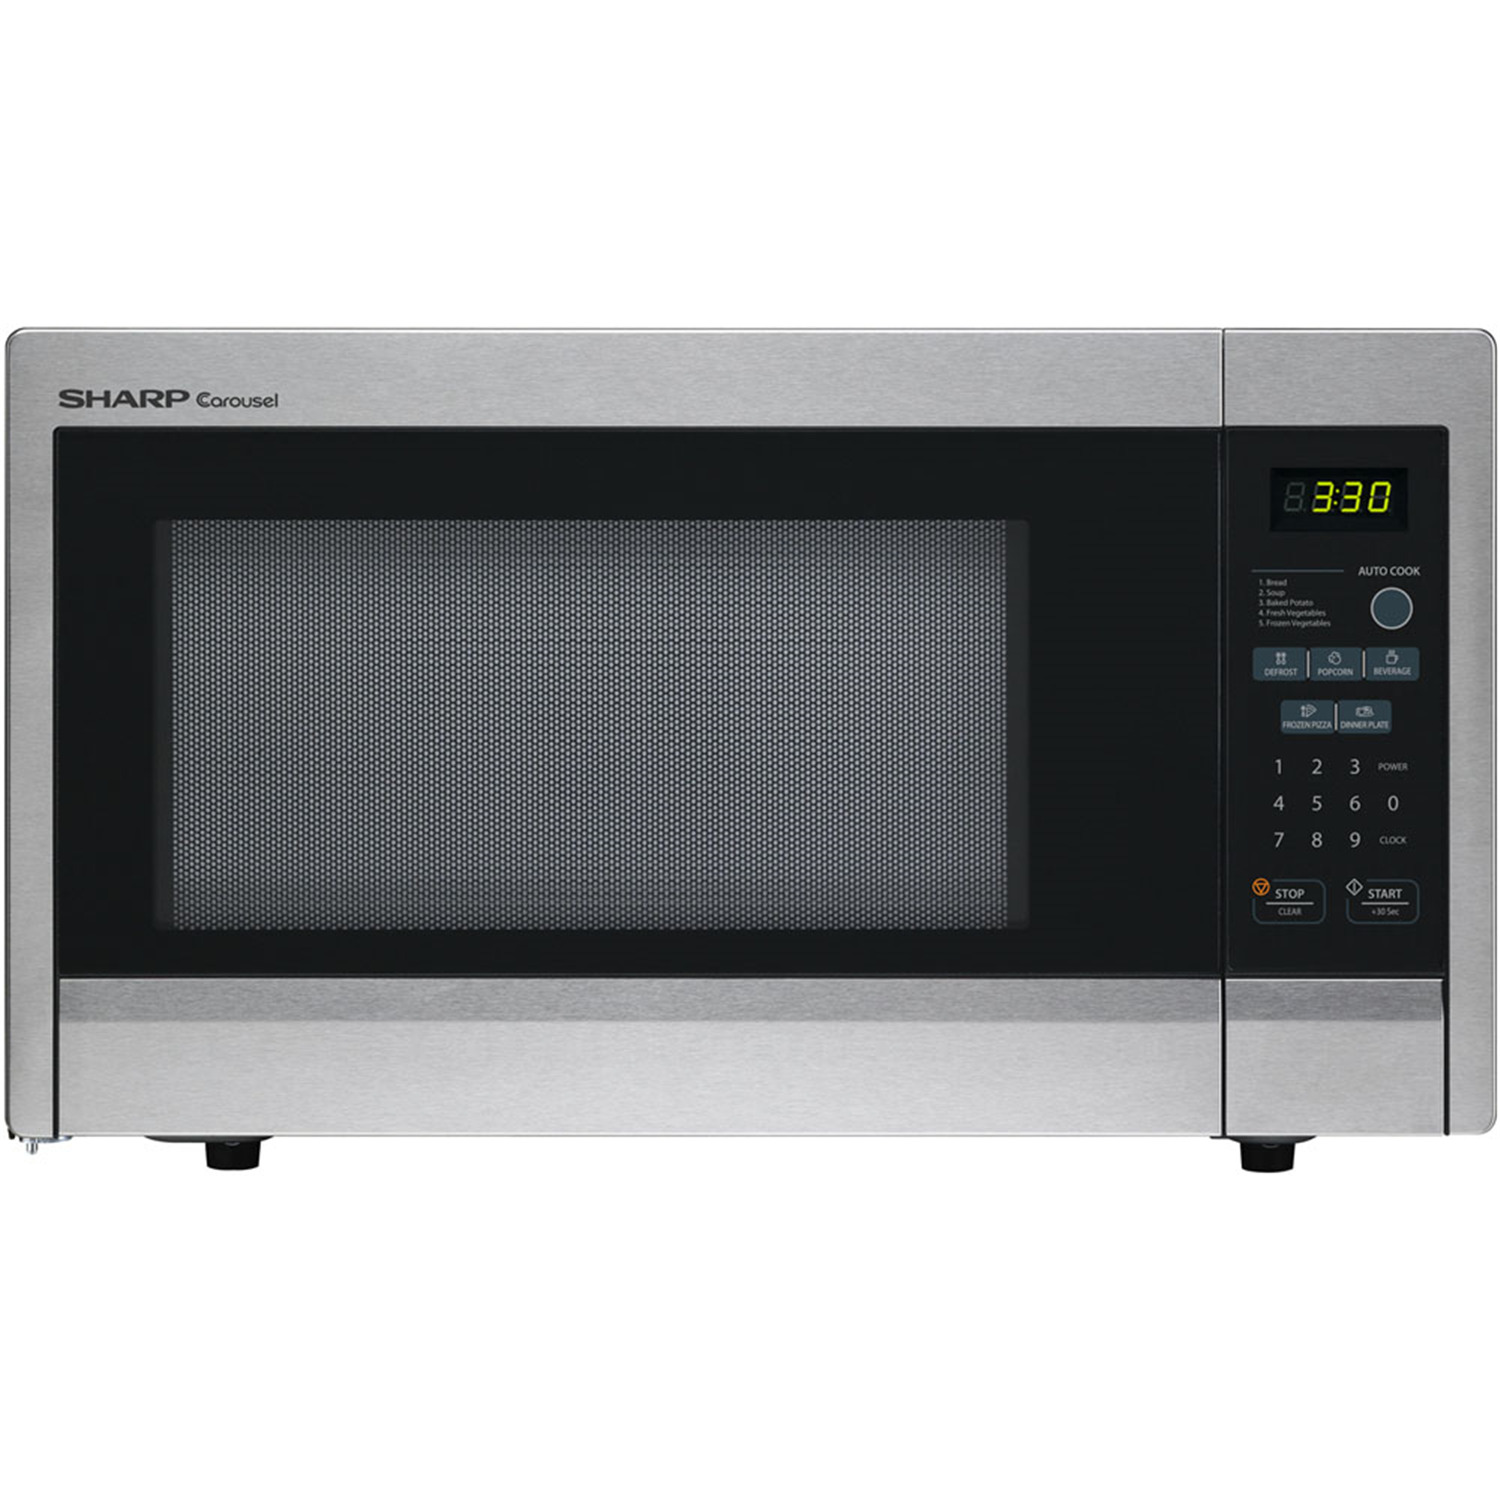 Sharp Carousel 1 1 Cu Ft 1000w Countertop Microwave Oven